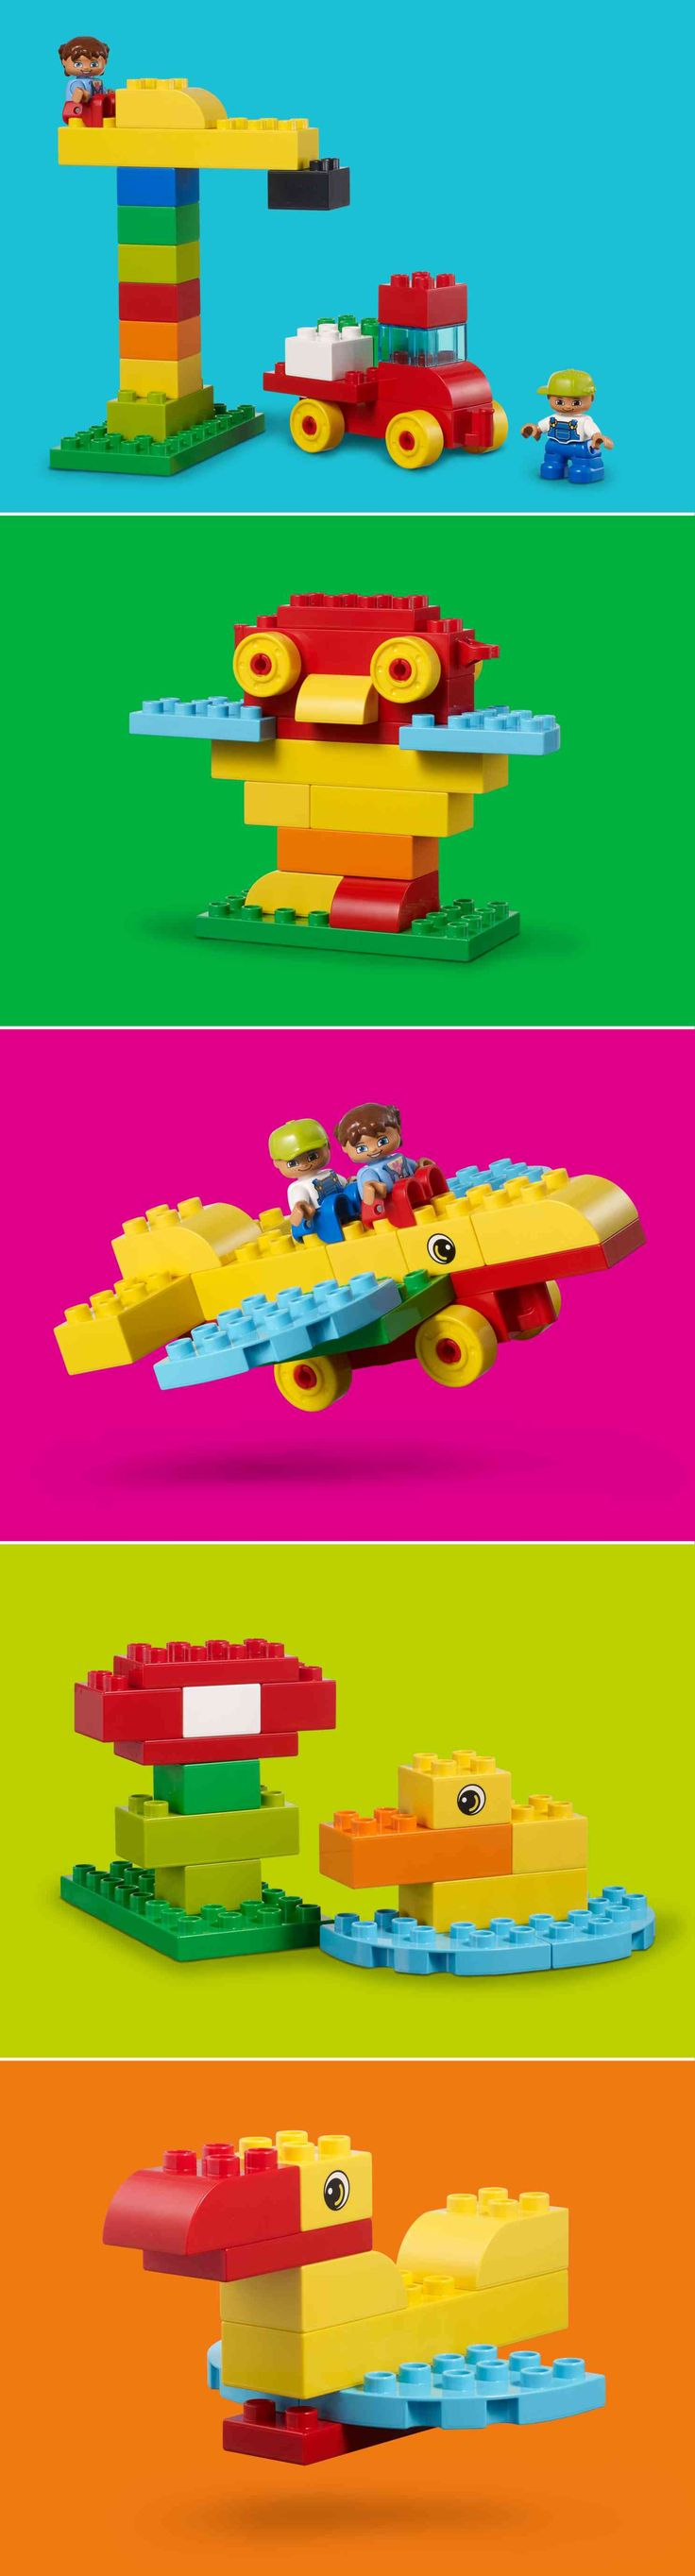 Whether you have a few minutes or a few hours to play, we've got five easy builds that you and your toddler can have fun making! :-)  http://www.lego.com/da-dk/family/articles/easy-builds-with-lego-duplo-156129ff337342039c68152e3208e417